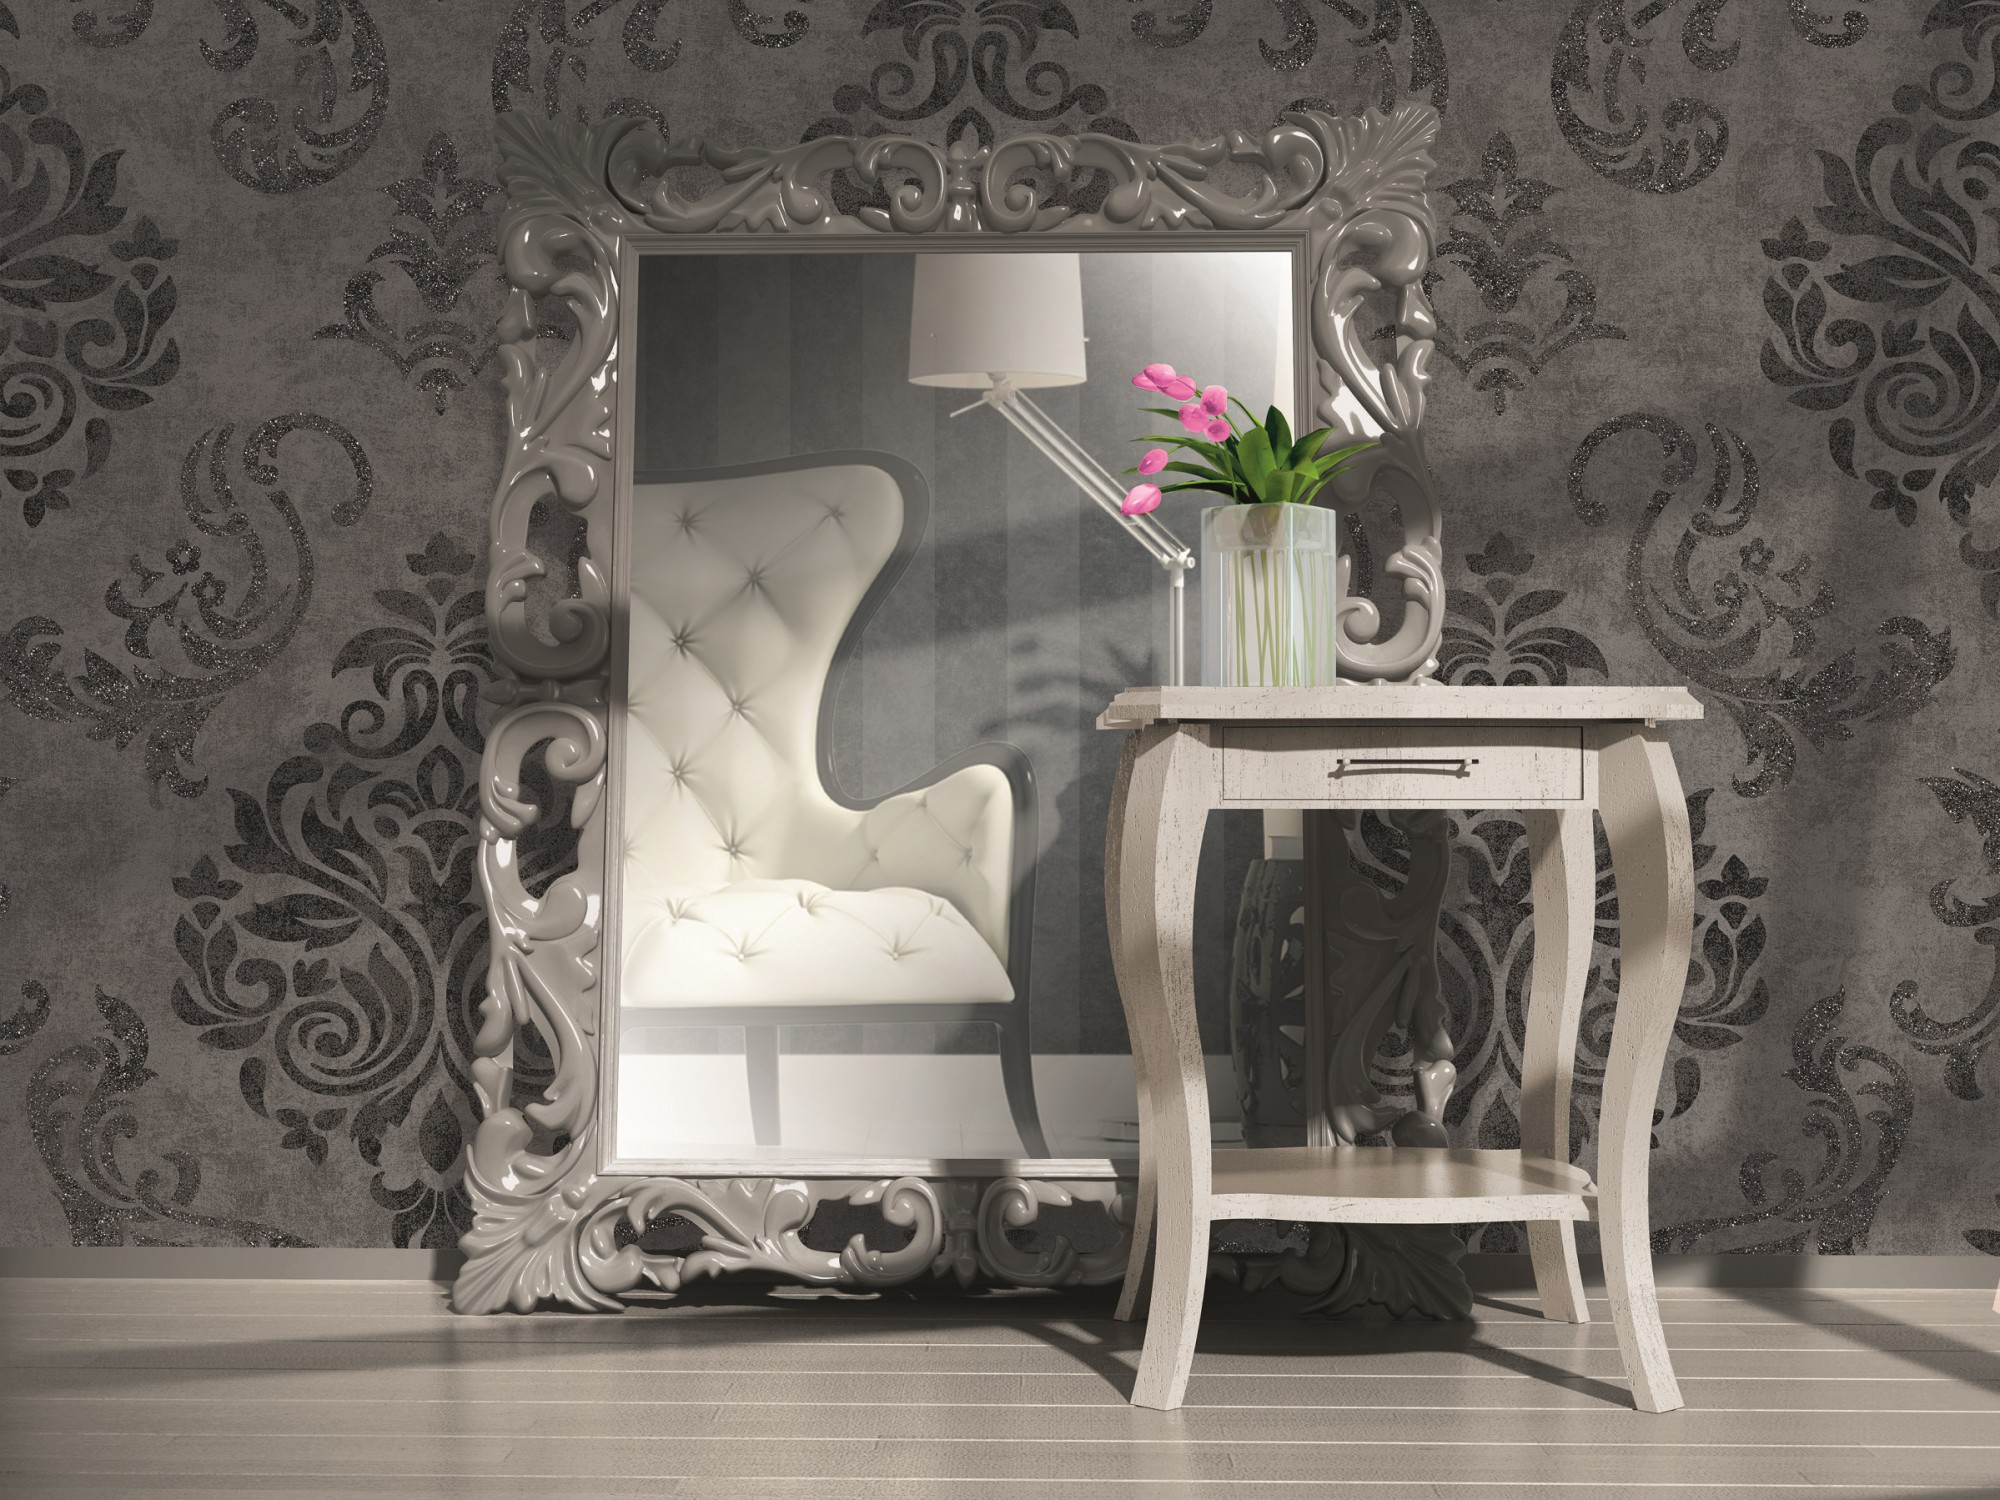 vliestapete memory tapete barock 95372 3 953723 schwarz grau silber. Black Bedroom Furniture Sets. Home Design Ideas